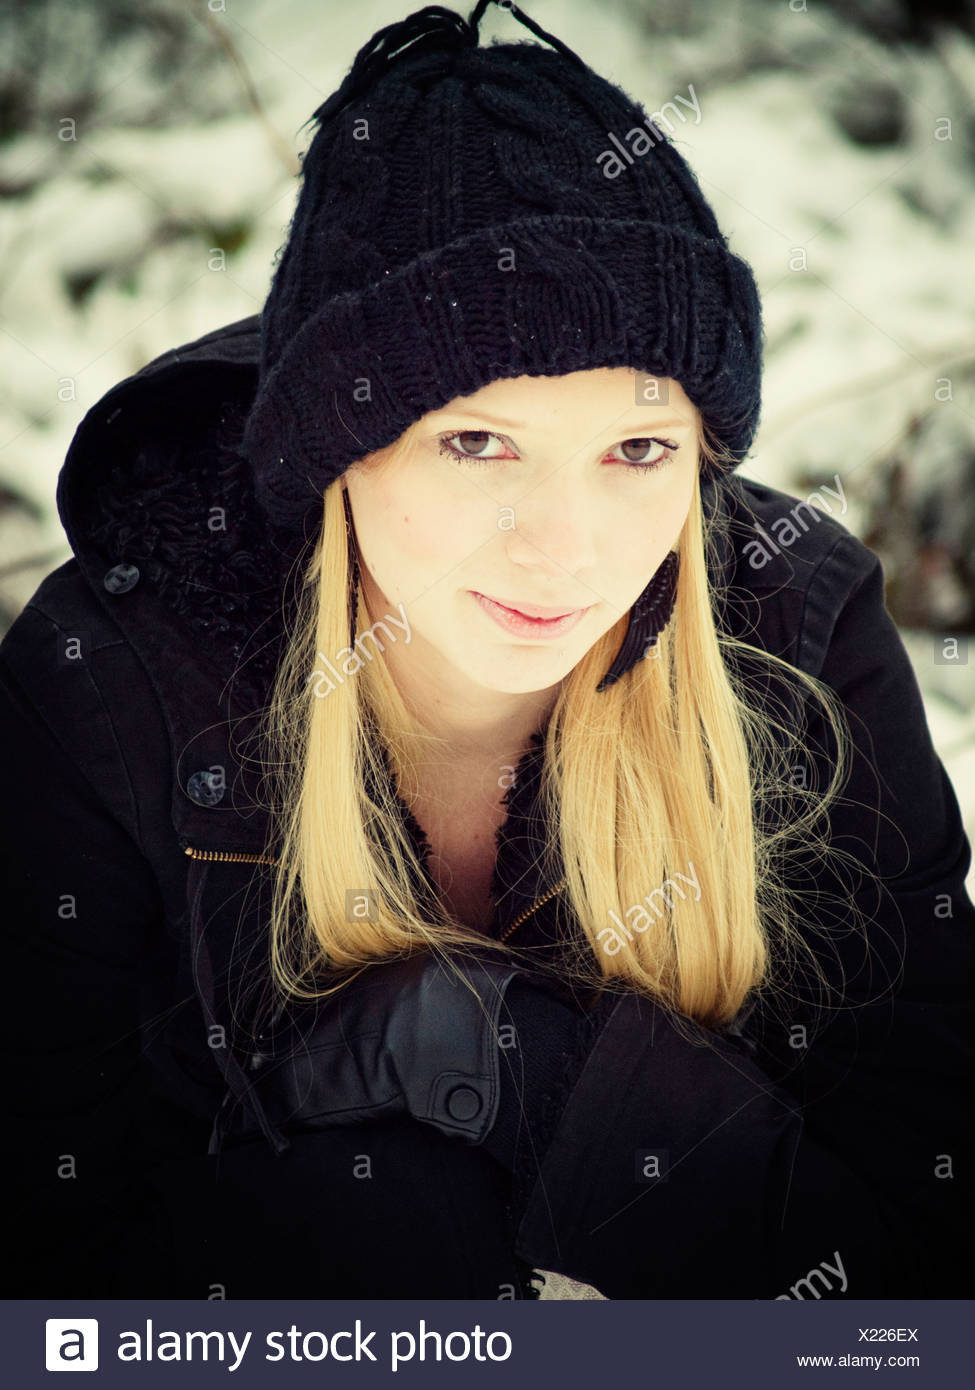 Blond woman in winter - Stock Image